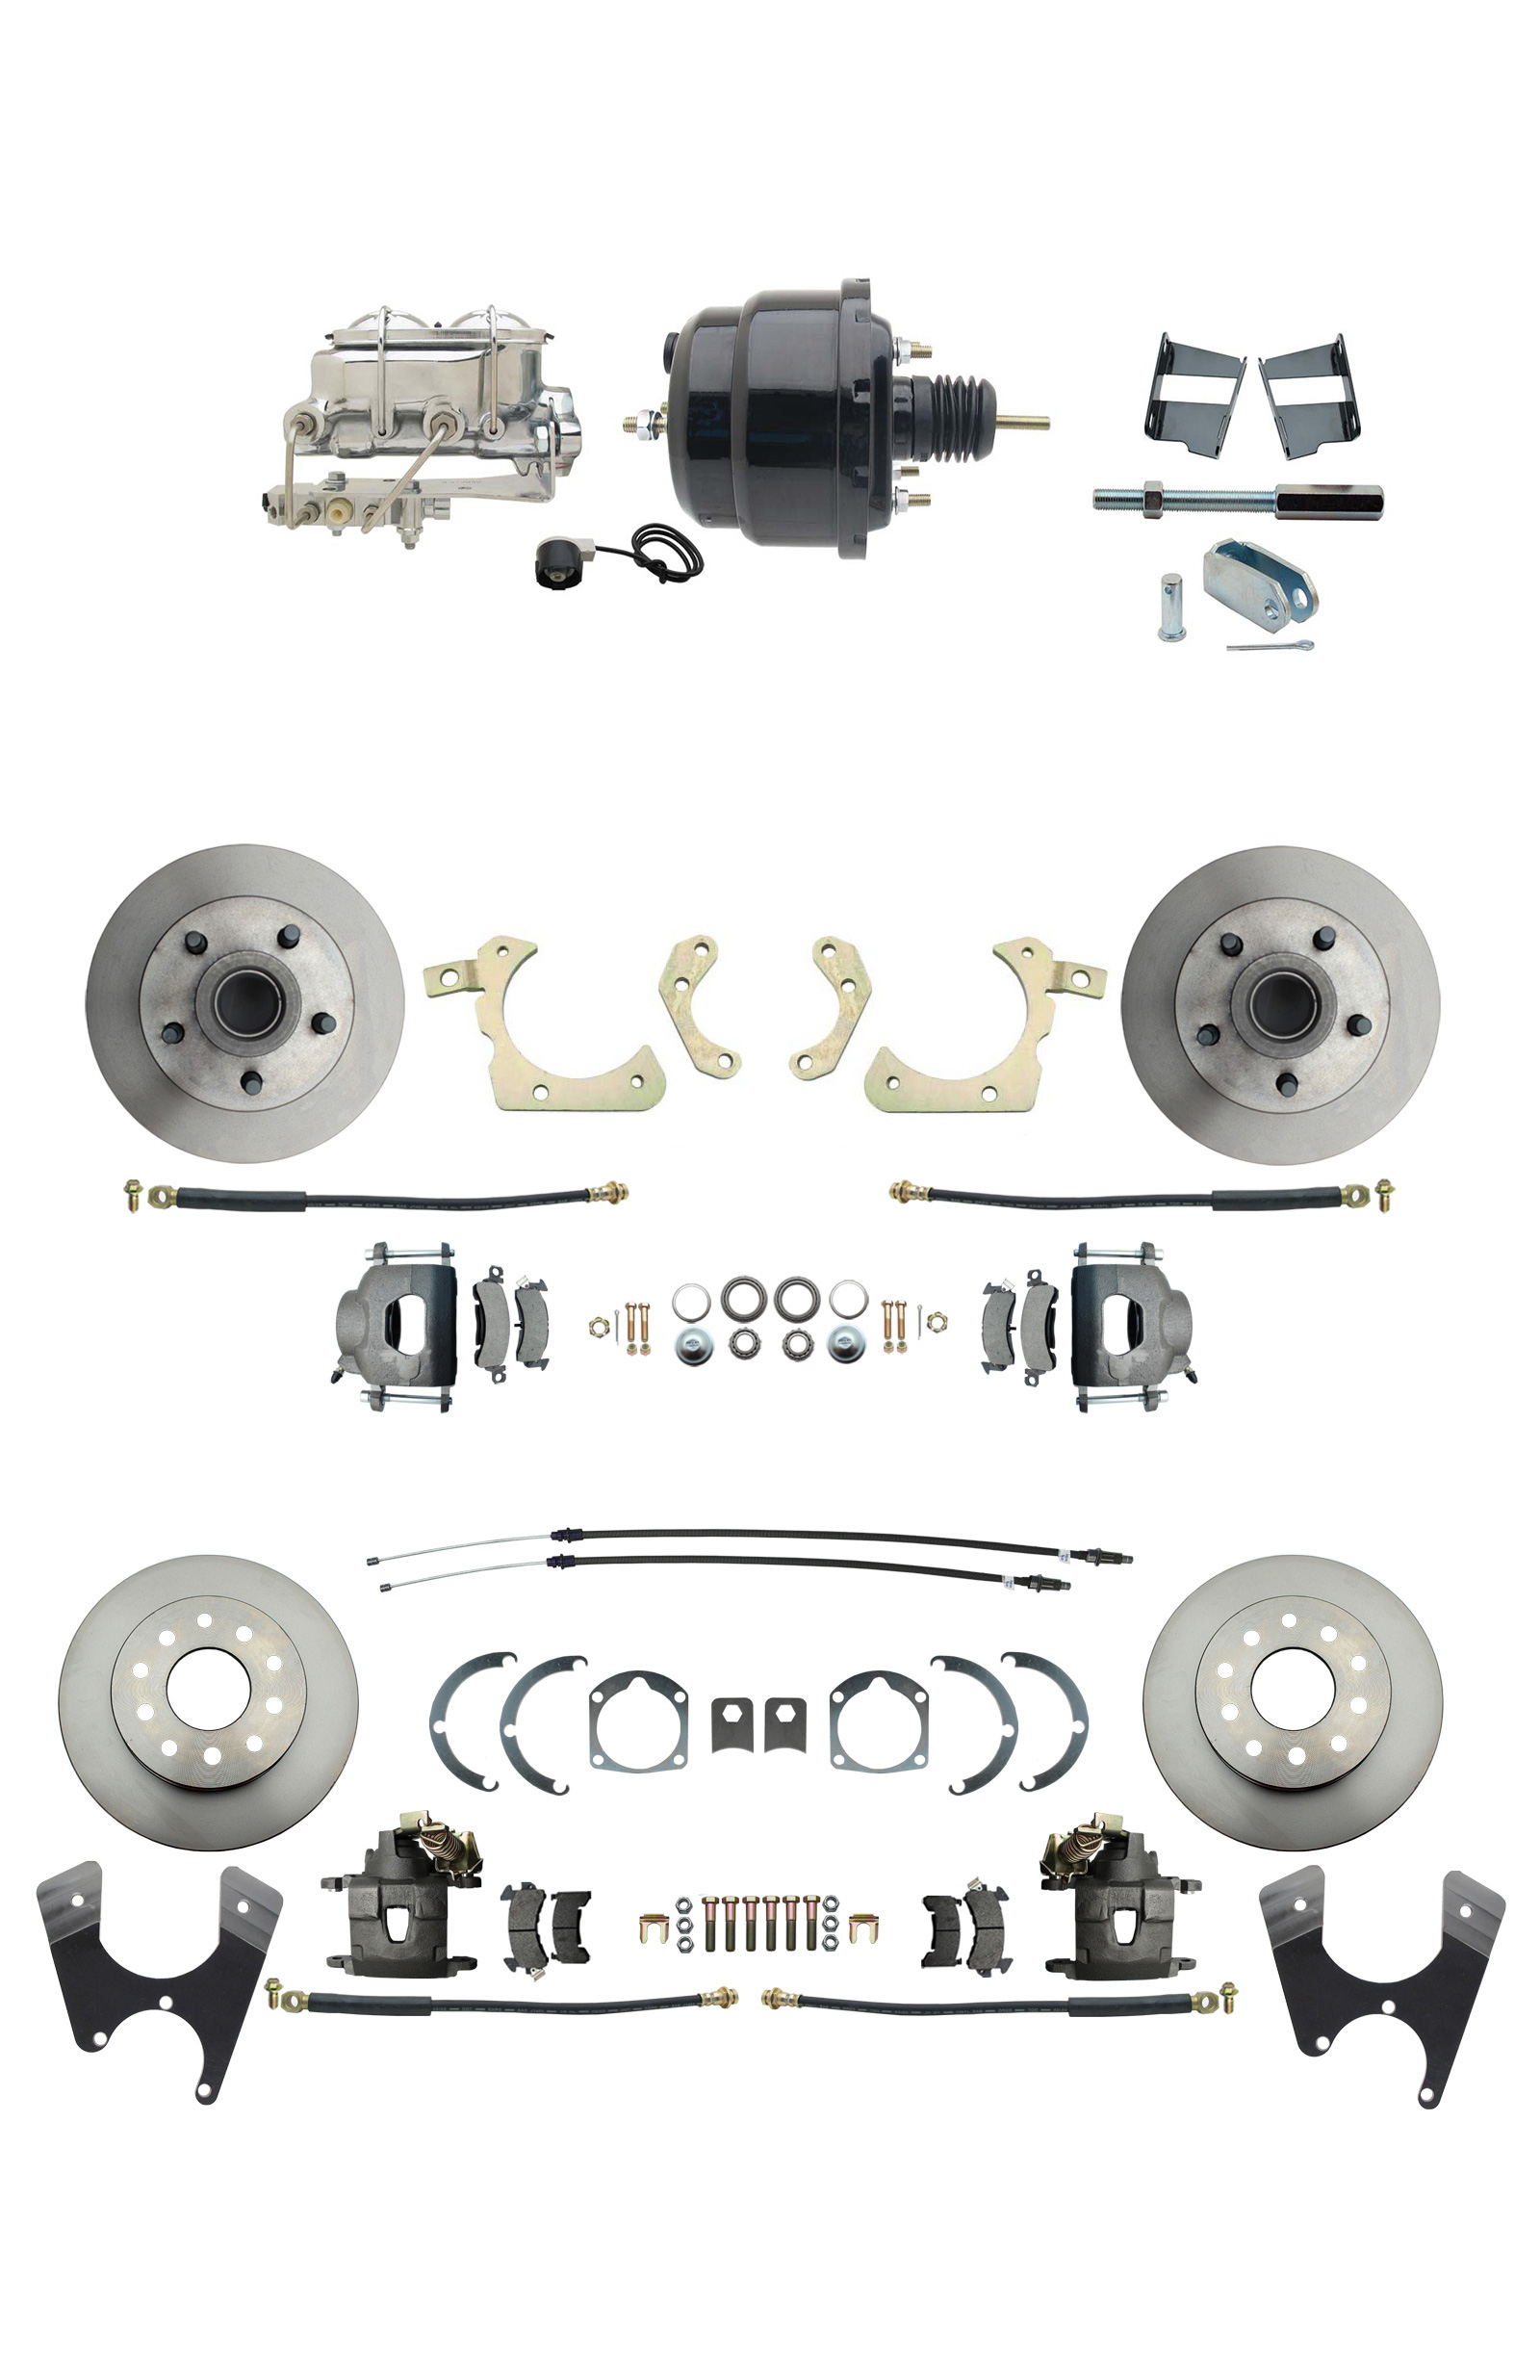 1959-1964 GM Full Size Front & Rear Power Disc Brake Kit (Impala, Bel Air, Biscayne) & 8 Dual Powder Coated Black Booster Conversion Kit W/ Chrome Master Cylinder Bottom Mount Disc/ Drum Proportioning Valve Kit